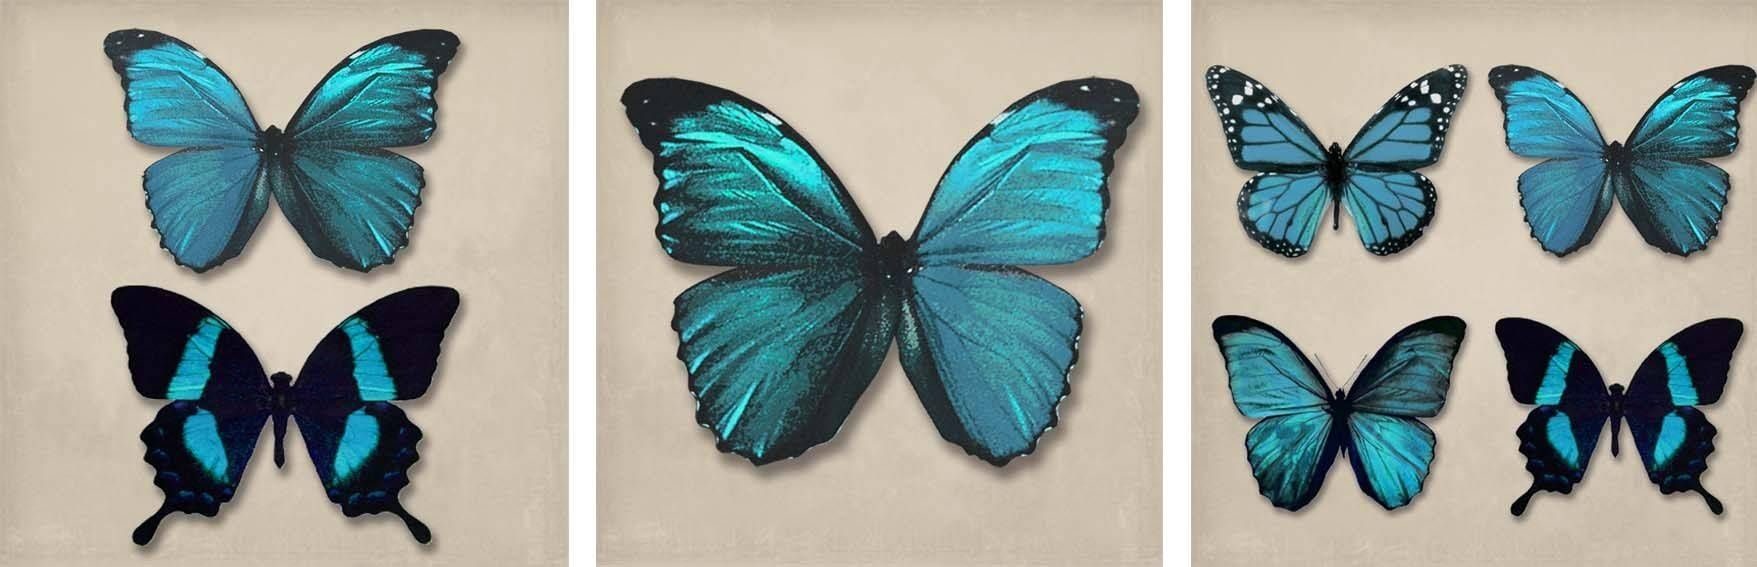 Teal Butterflies Set Of 3 Canvasesarthouse : Wallpaper Direct Intended For 2017 Butterfly Canvas Wall Art (View 17 of 20)